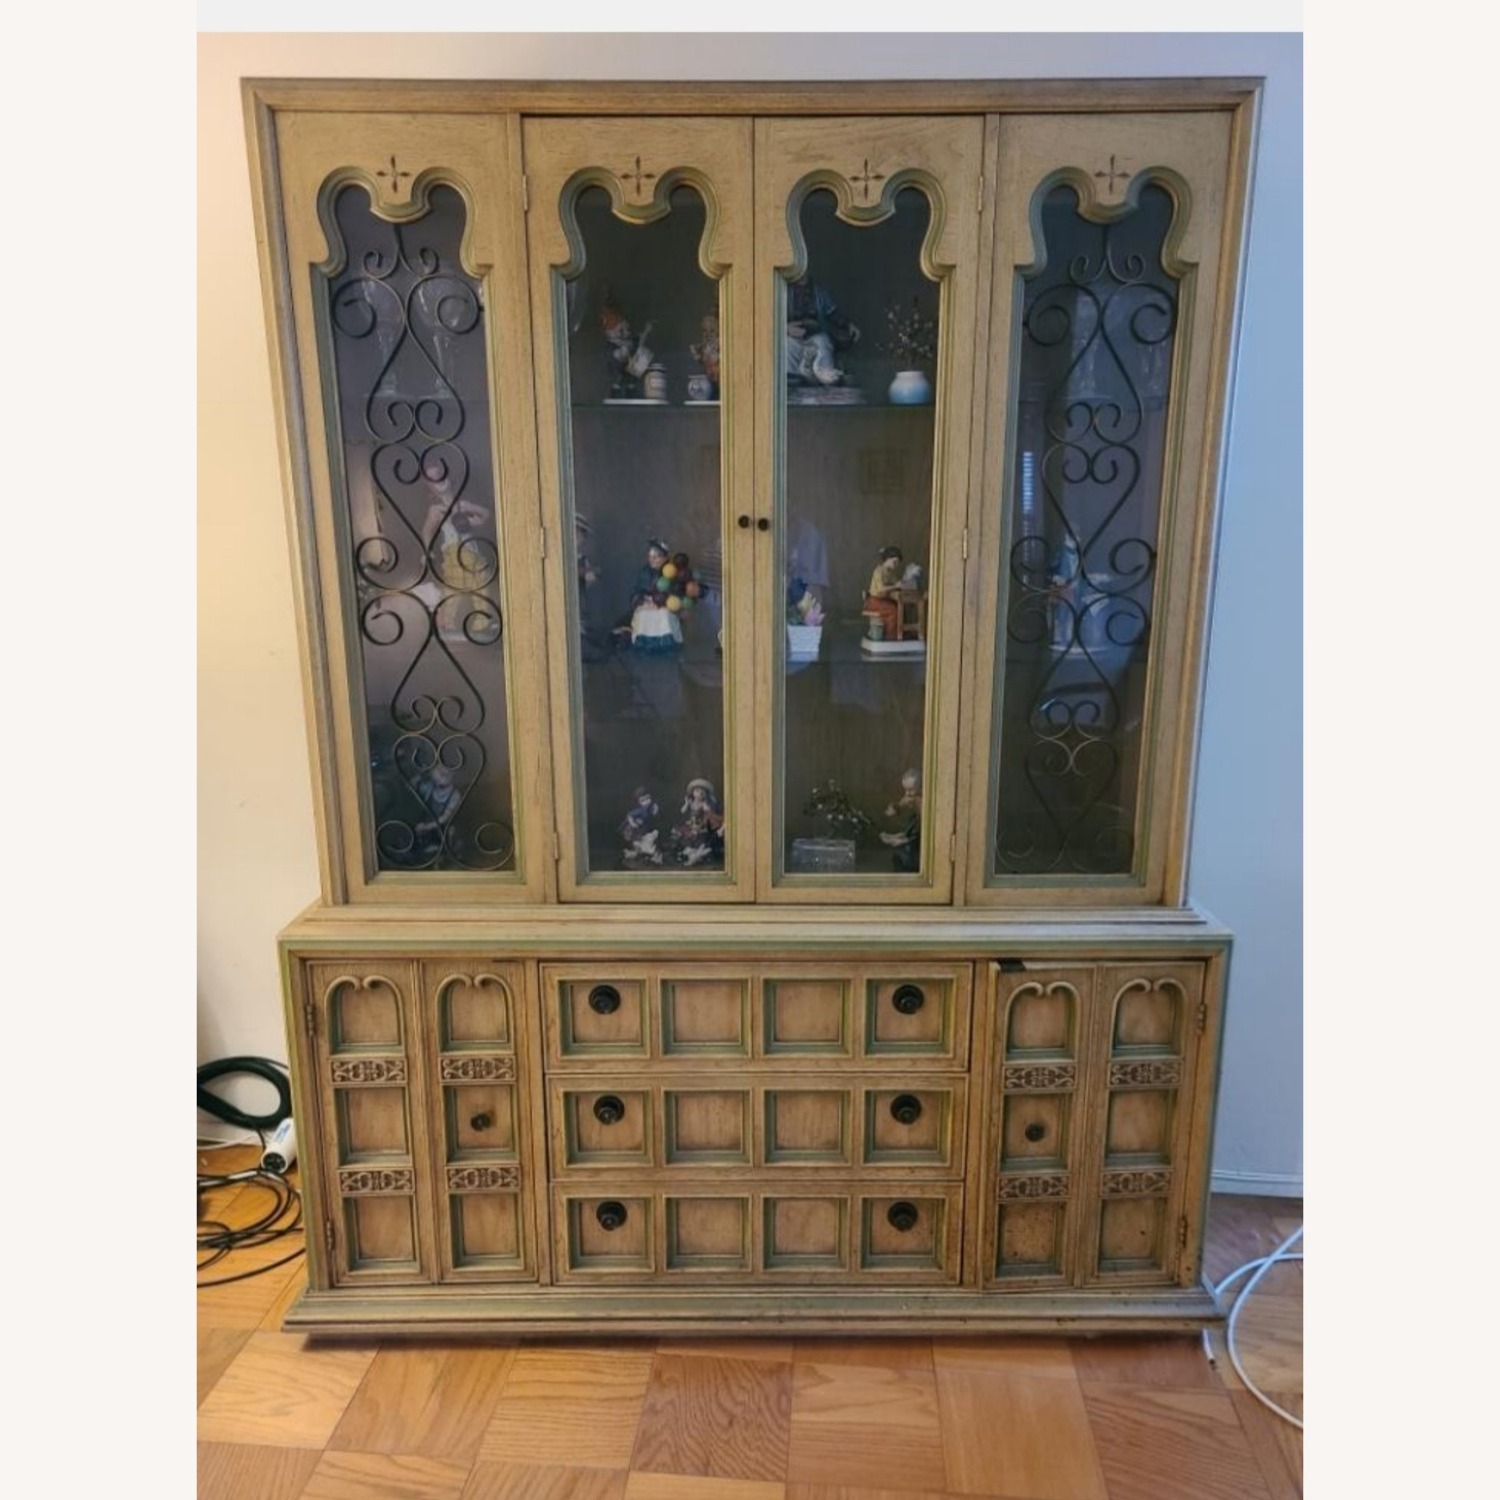 Vintage Wood and Glass Wall Unit - image-1